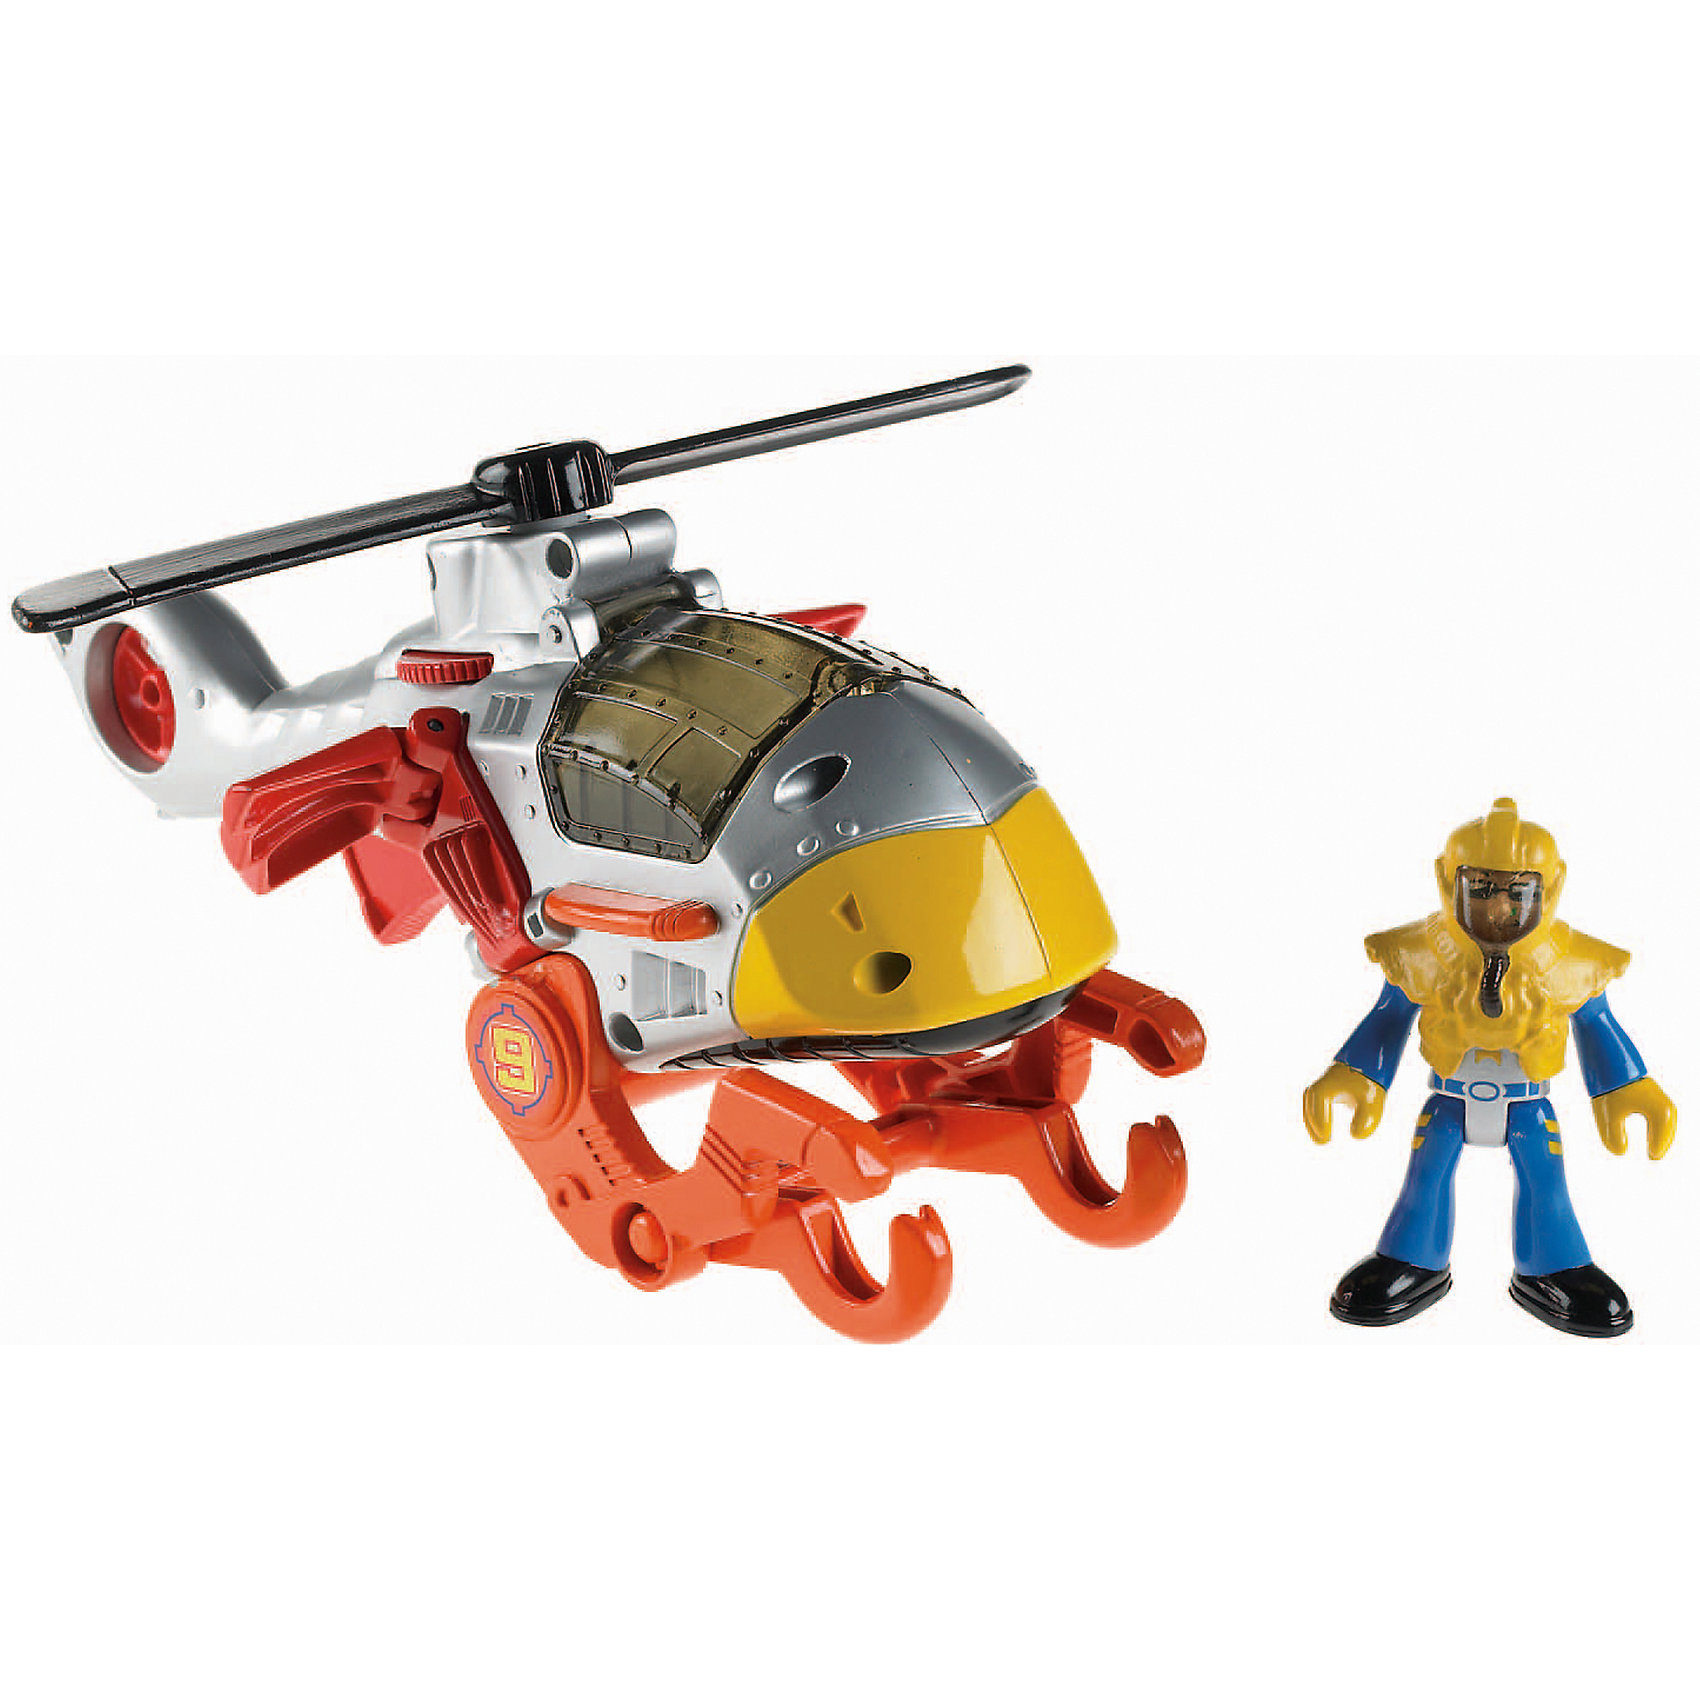 Mattel Летательный аппарат Sky Racers Feature Plane, Imaginext, Fisher Price запонки arcadio rossi 2 b 1012 13 e